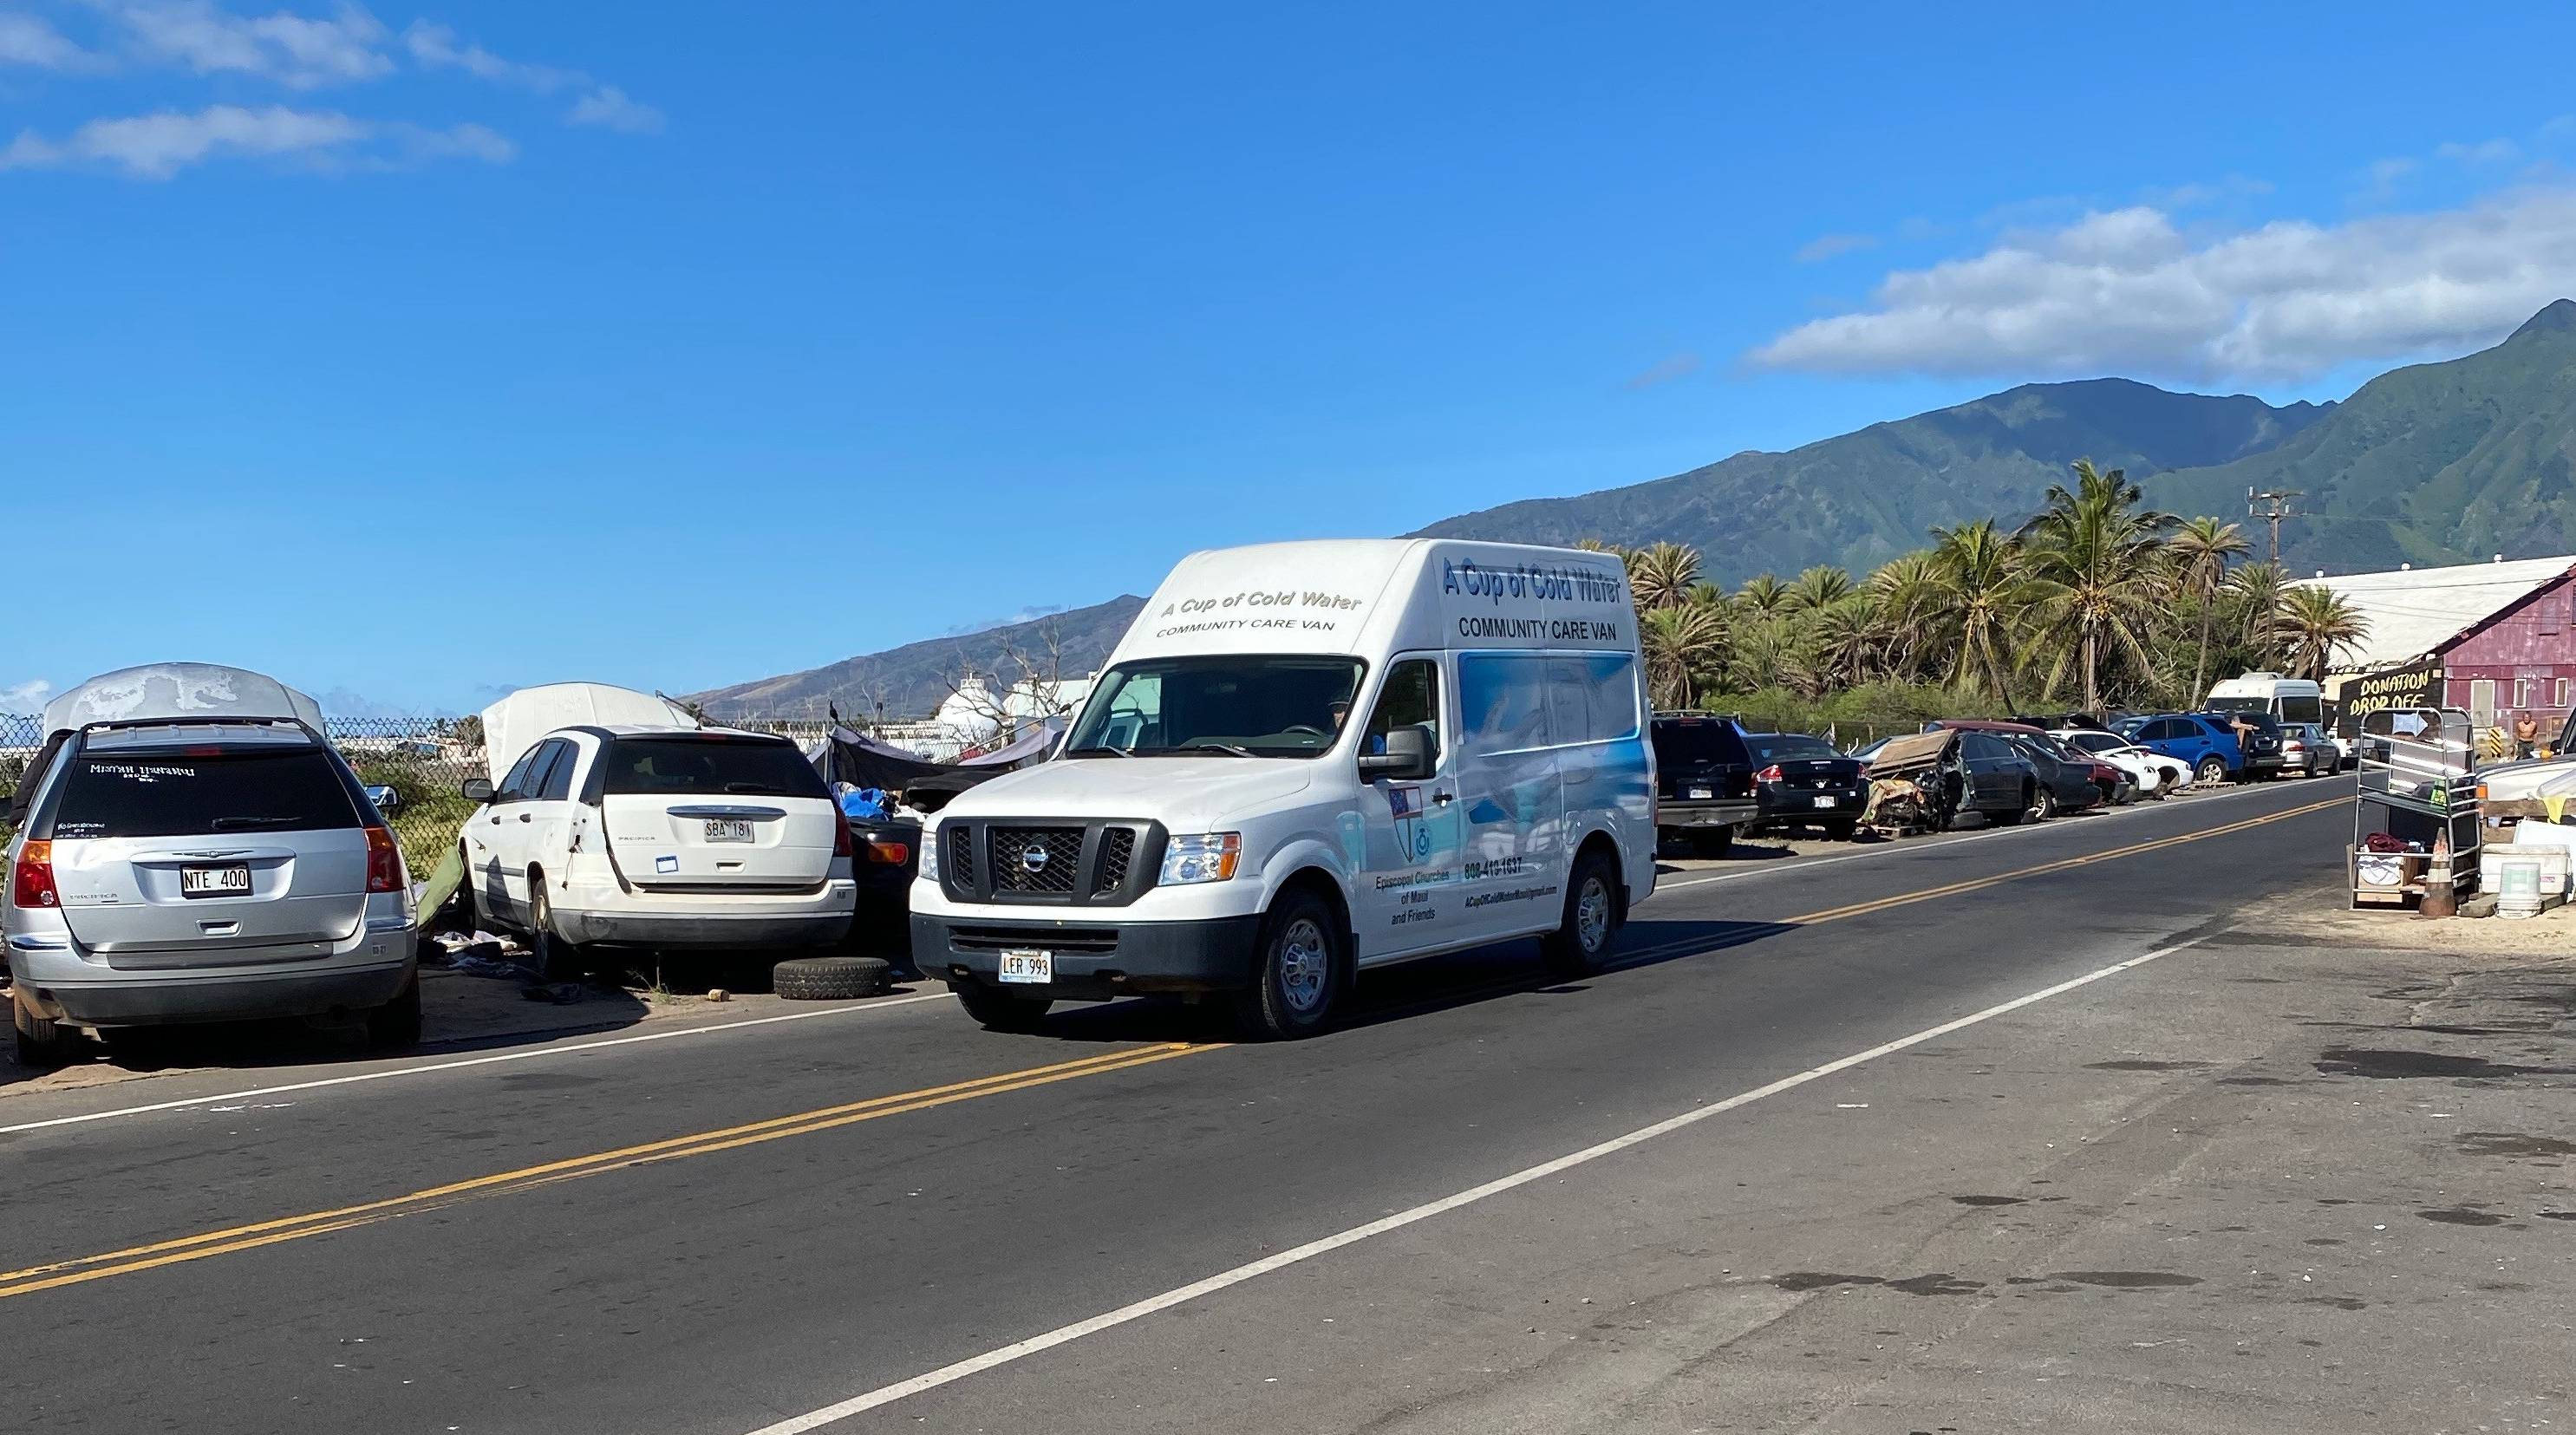 A Cup of Cold Water care van on the road. A Cup of Cold Water is an an outreach program for the unsheltered on Maui.